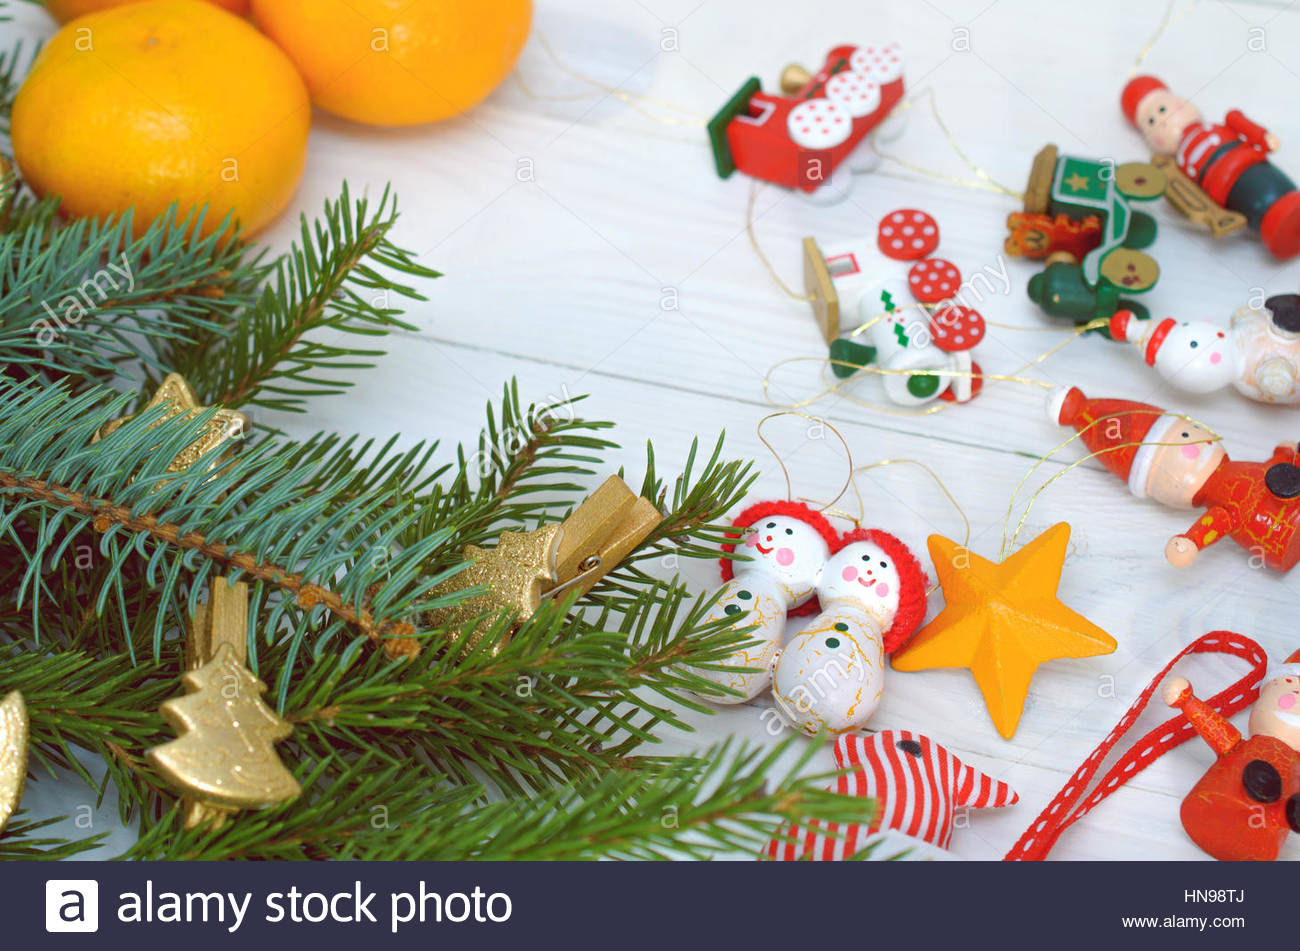 Pine Branches, Christmas Toys And Tangerines On A White Background Stock Photo